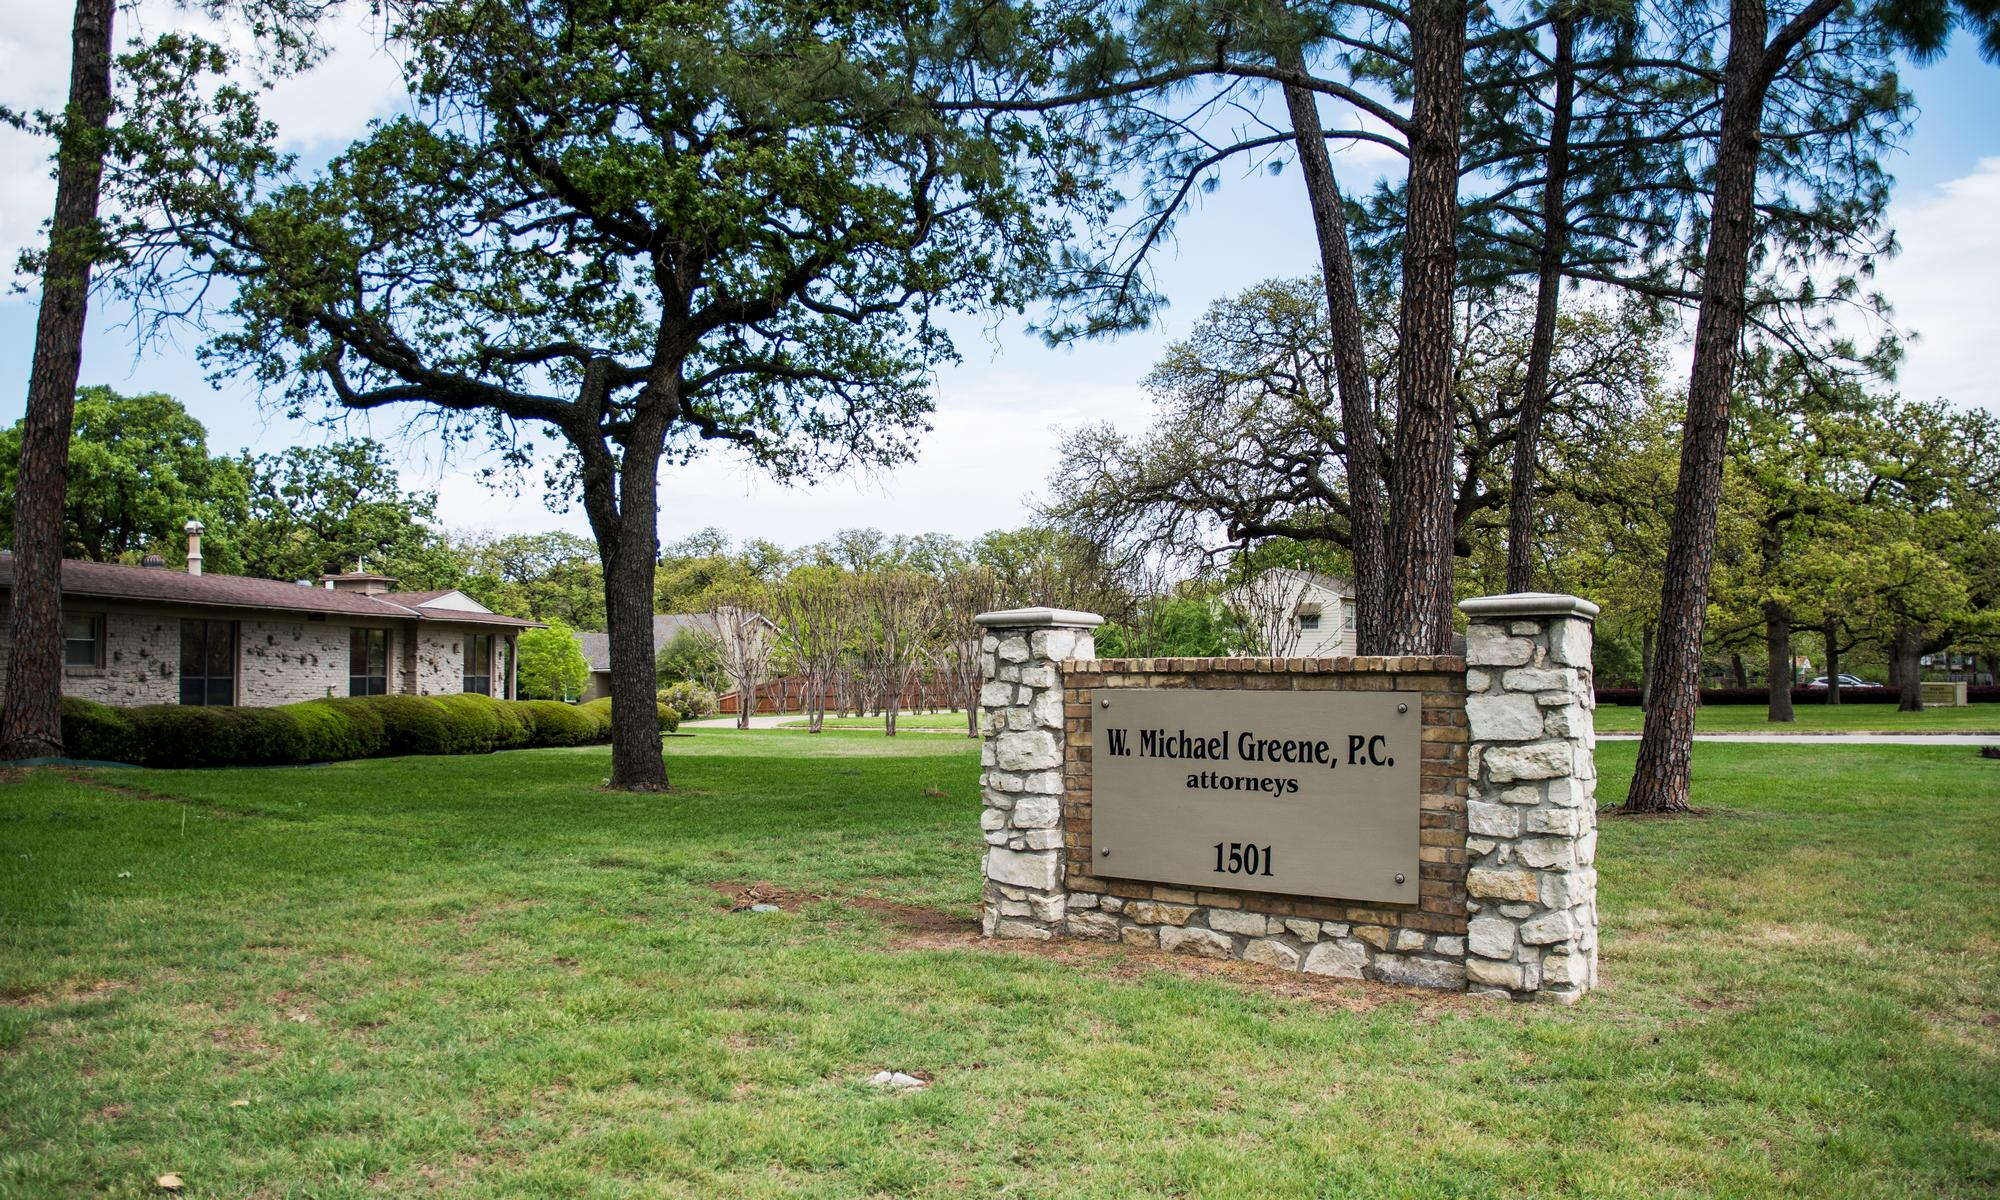 W Michael Greene office monument sign wide angle shot